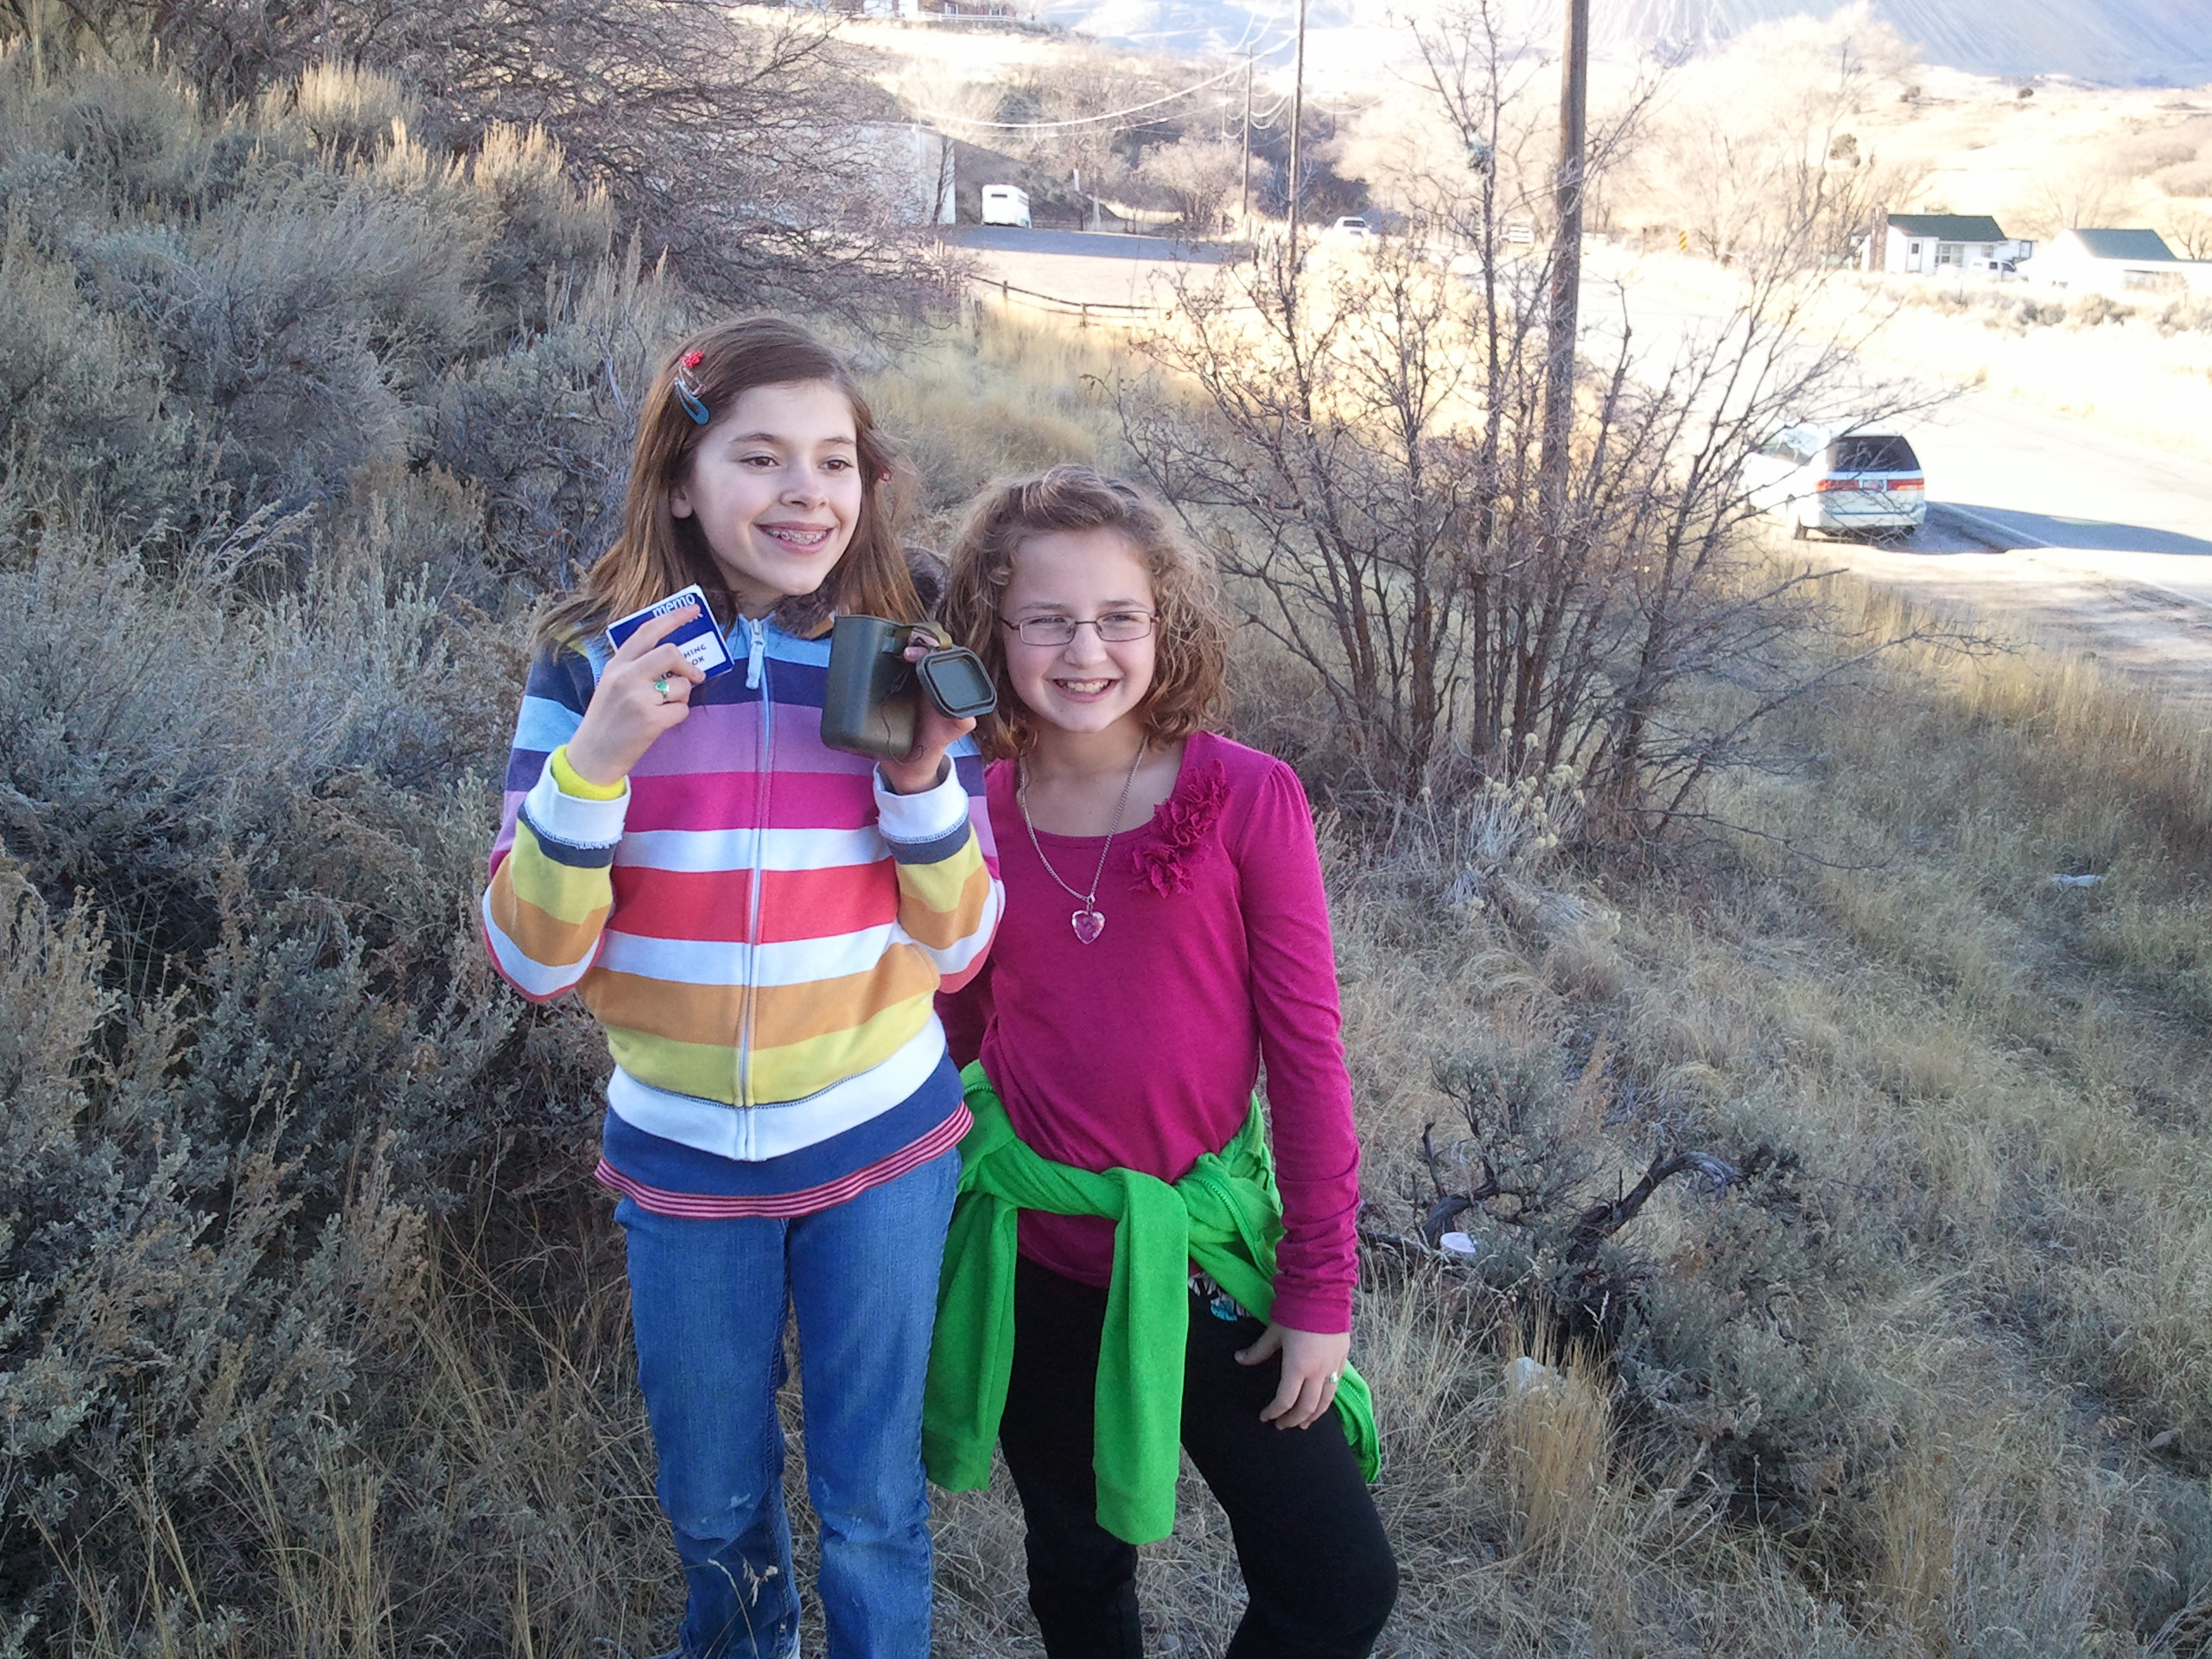 Caching in Herriman